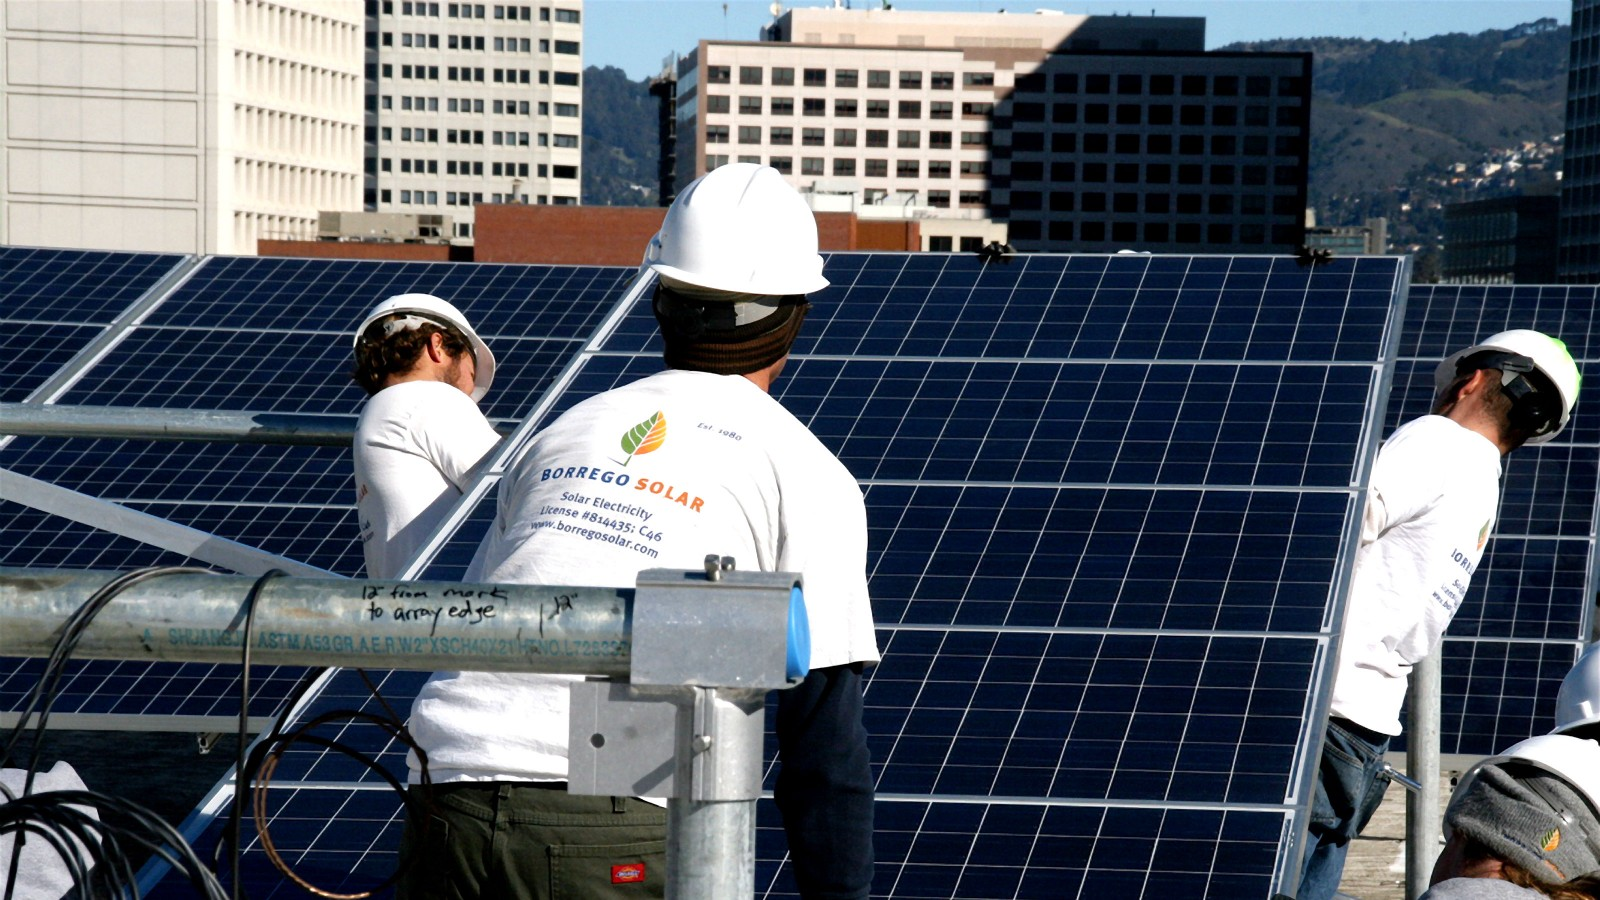 Borrego Solar Systems CEO Sees Installations Doubling This Year